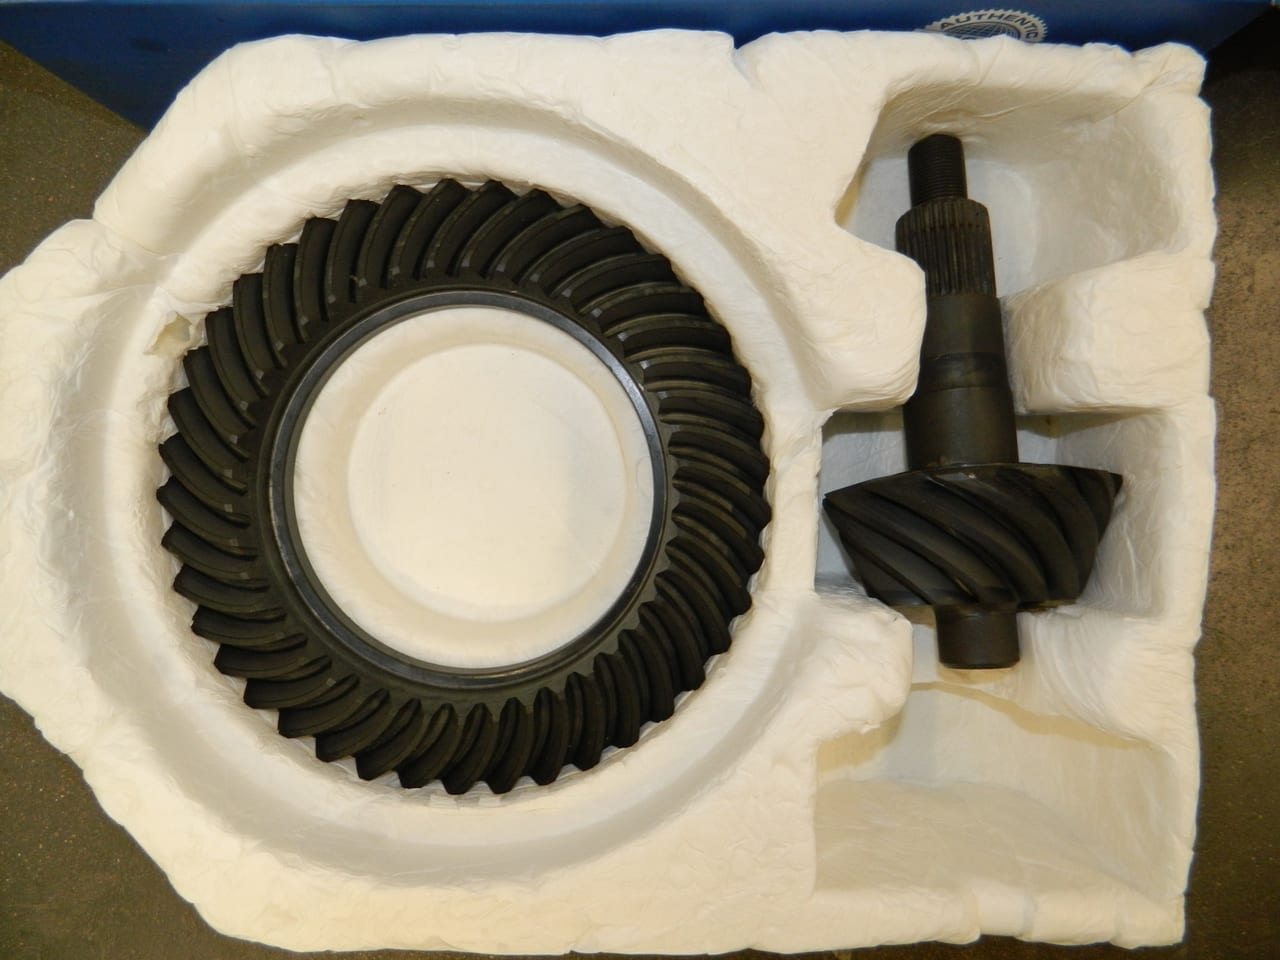 GM 14 Bolt 10.5 Ring & Pinion Gear Set 3:42 AAM OEM Chevy GM14T-342